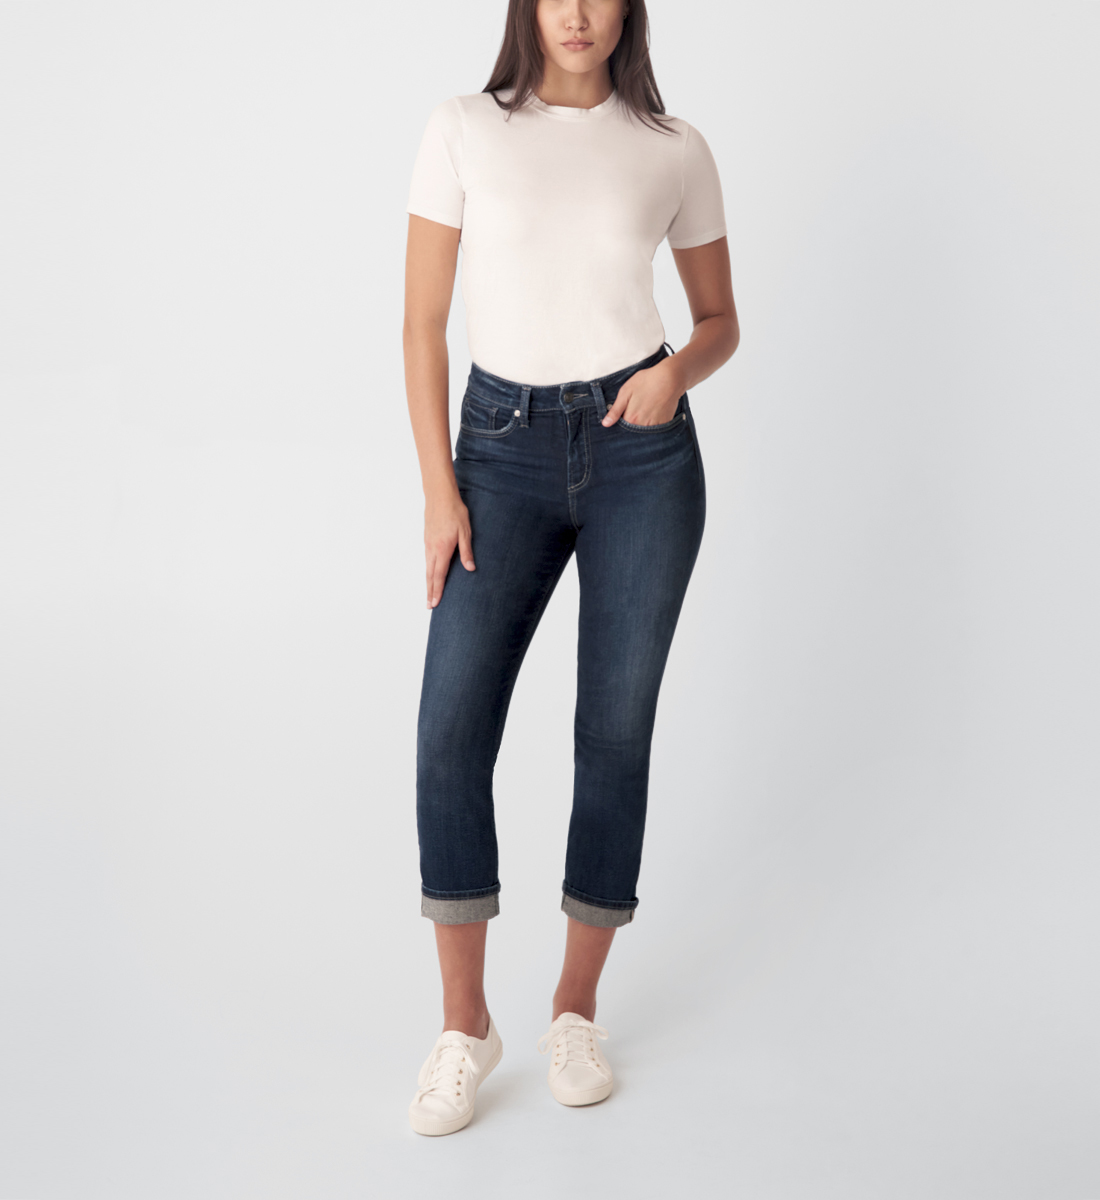 Silver Jeans Avery High Rise Straight Crop Jeans